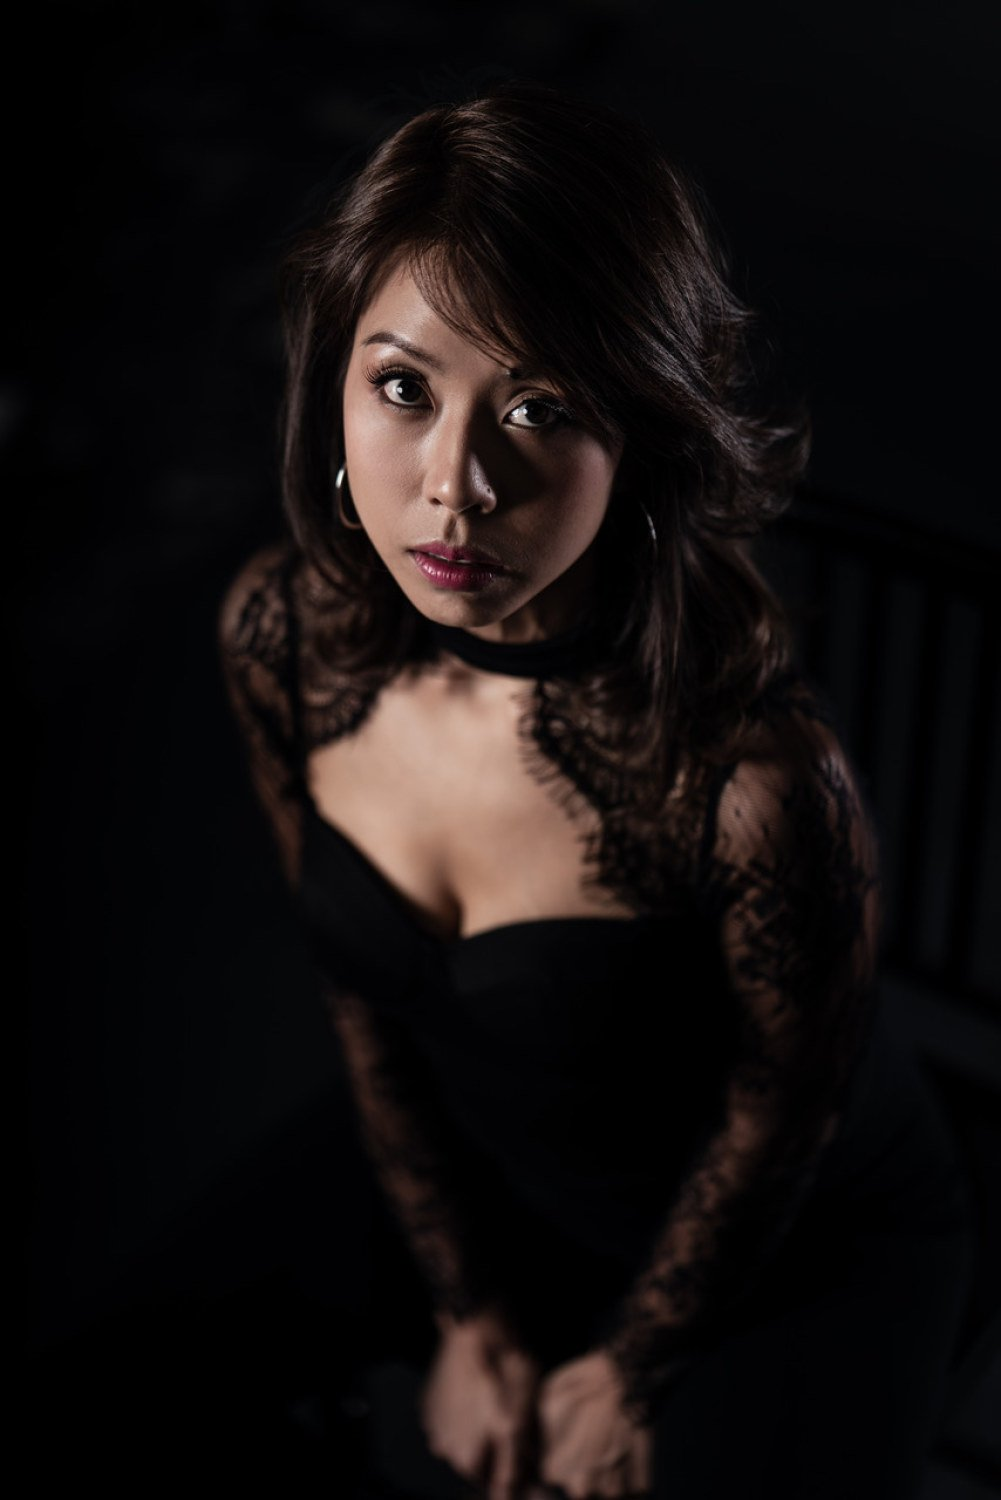 portrait photography singapore a woman posing for the photo in a dark-themed room